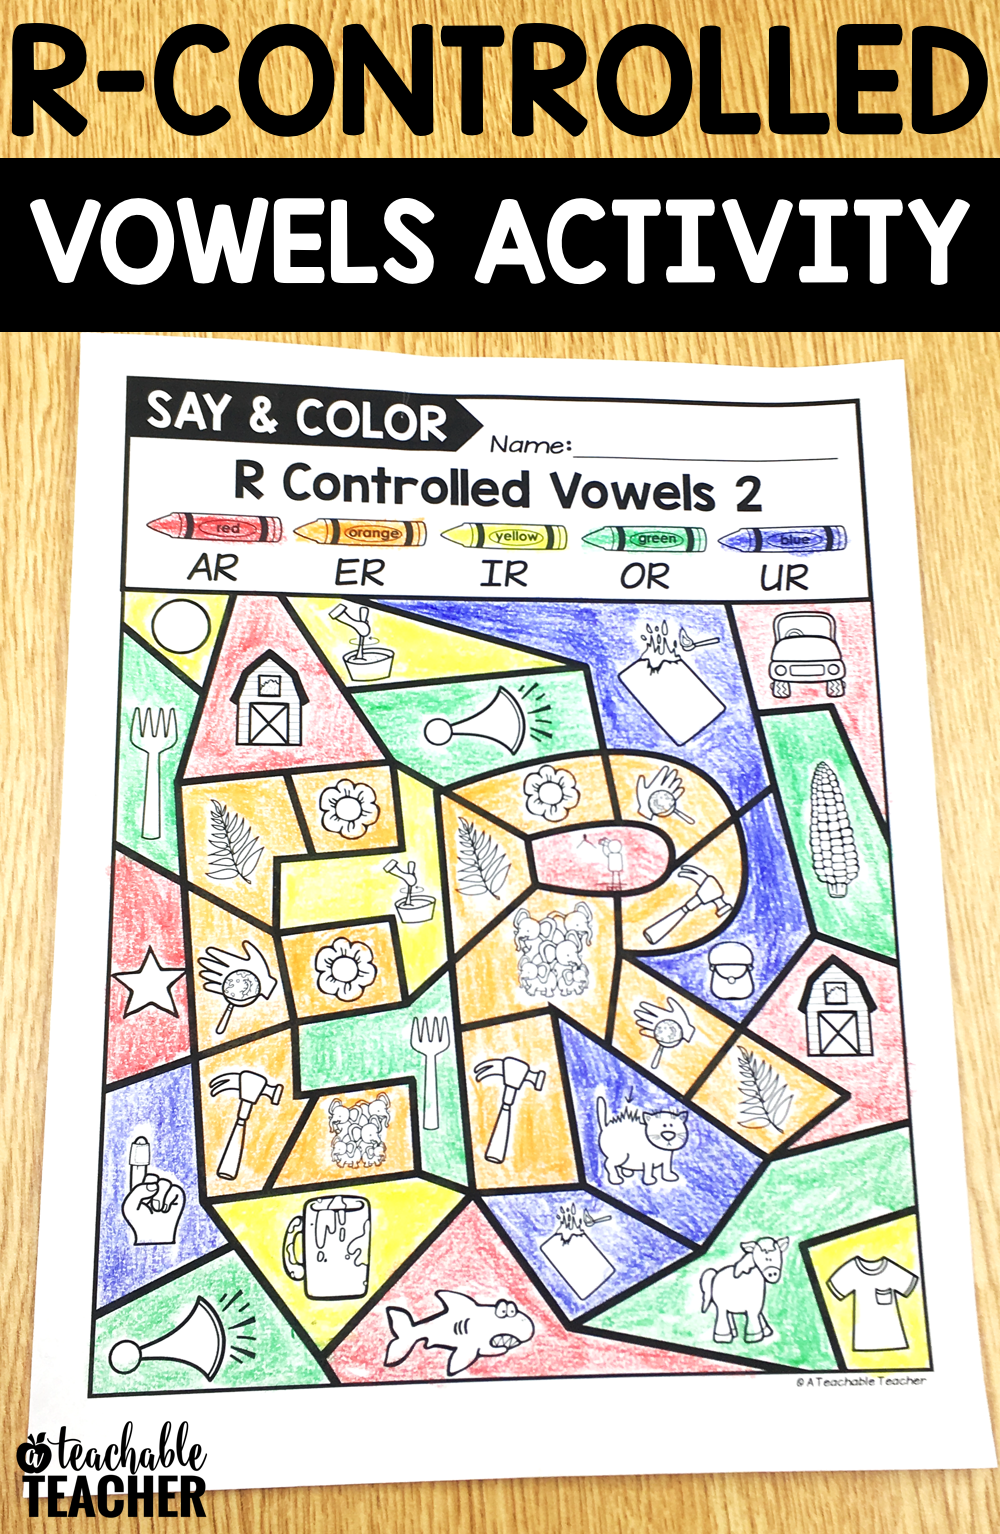 medium resolution of R-controlled vowels worksheets. Say and Color r-controlled vowels  printables incorpora…   Vowel activities